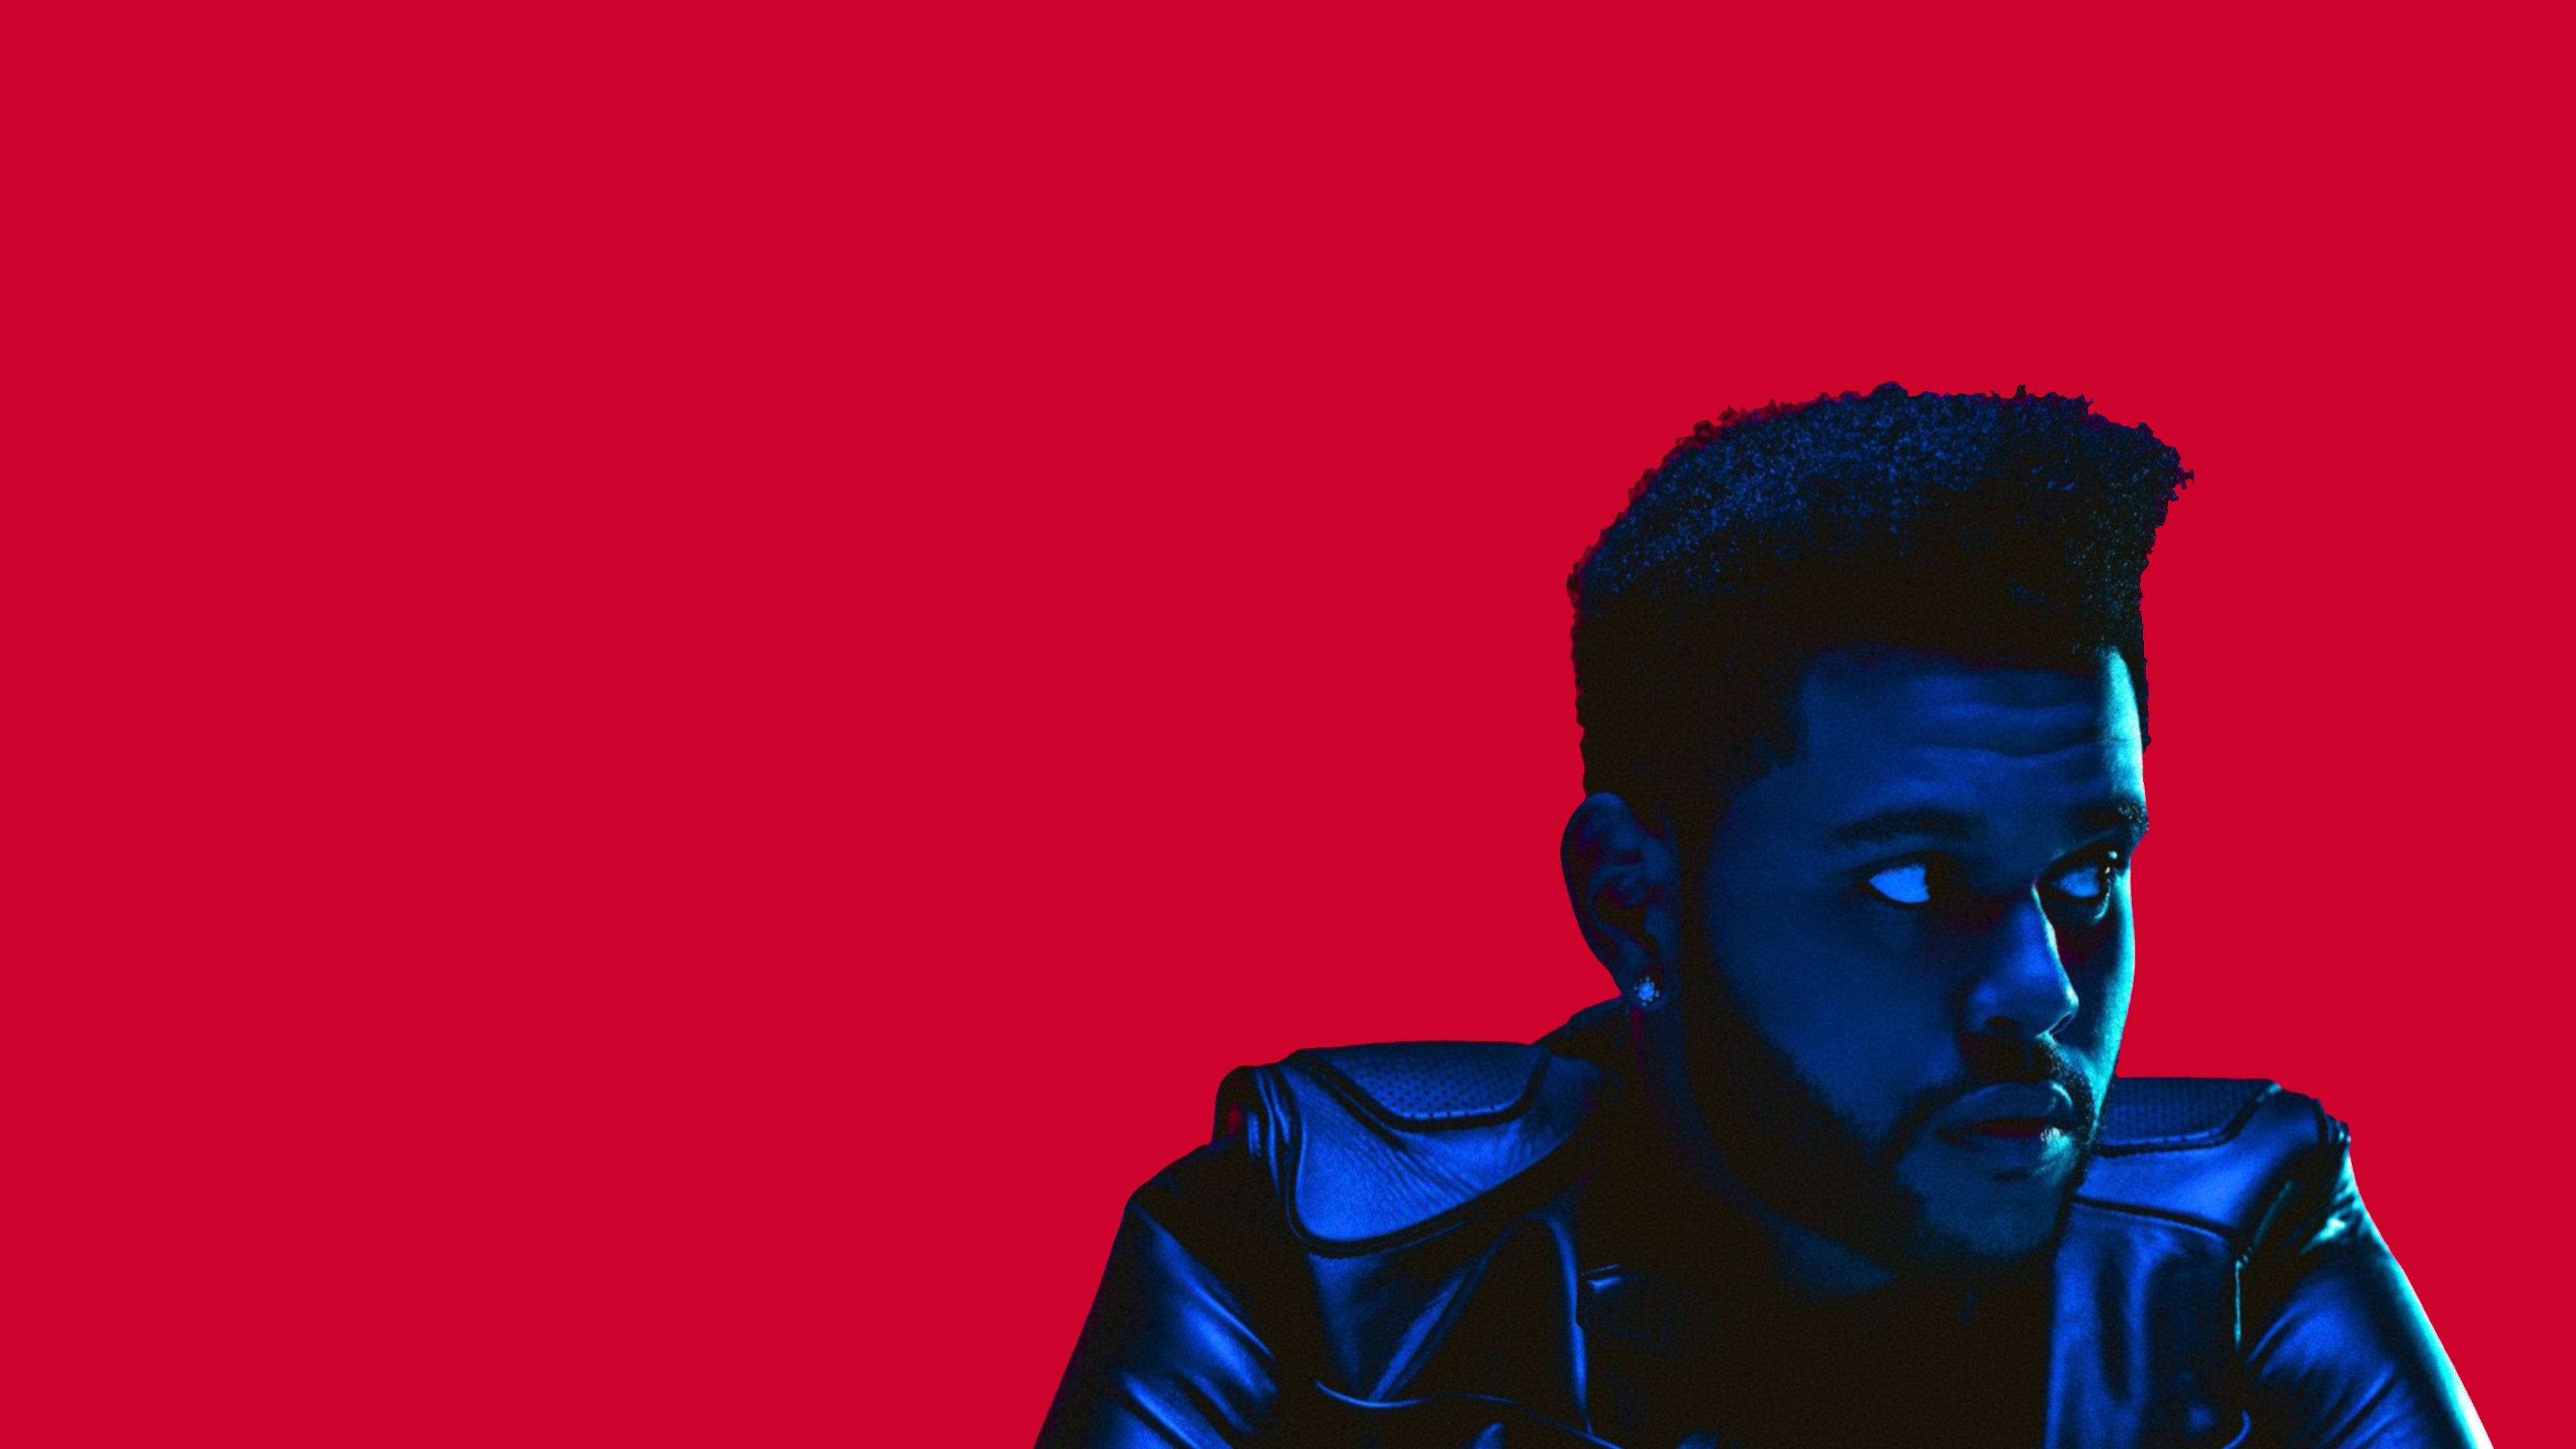 The Weeknd Wallpaper Download Free Stunning Backgrounds For